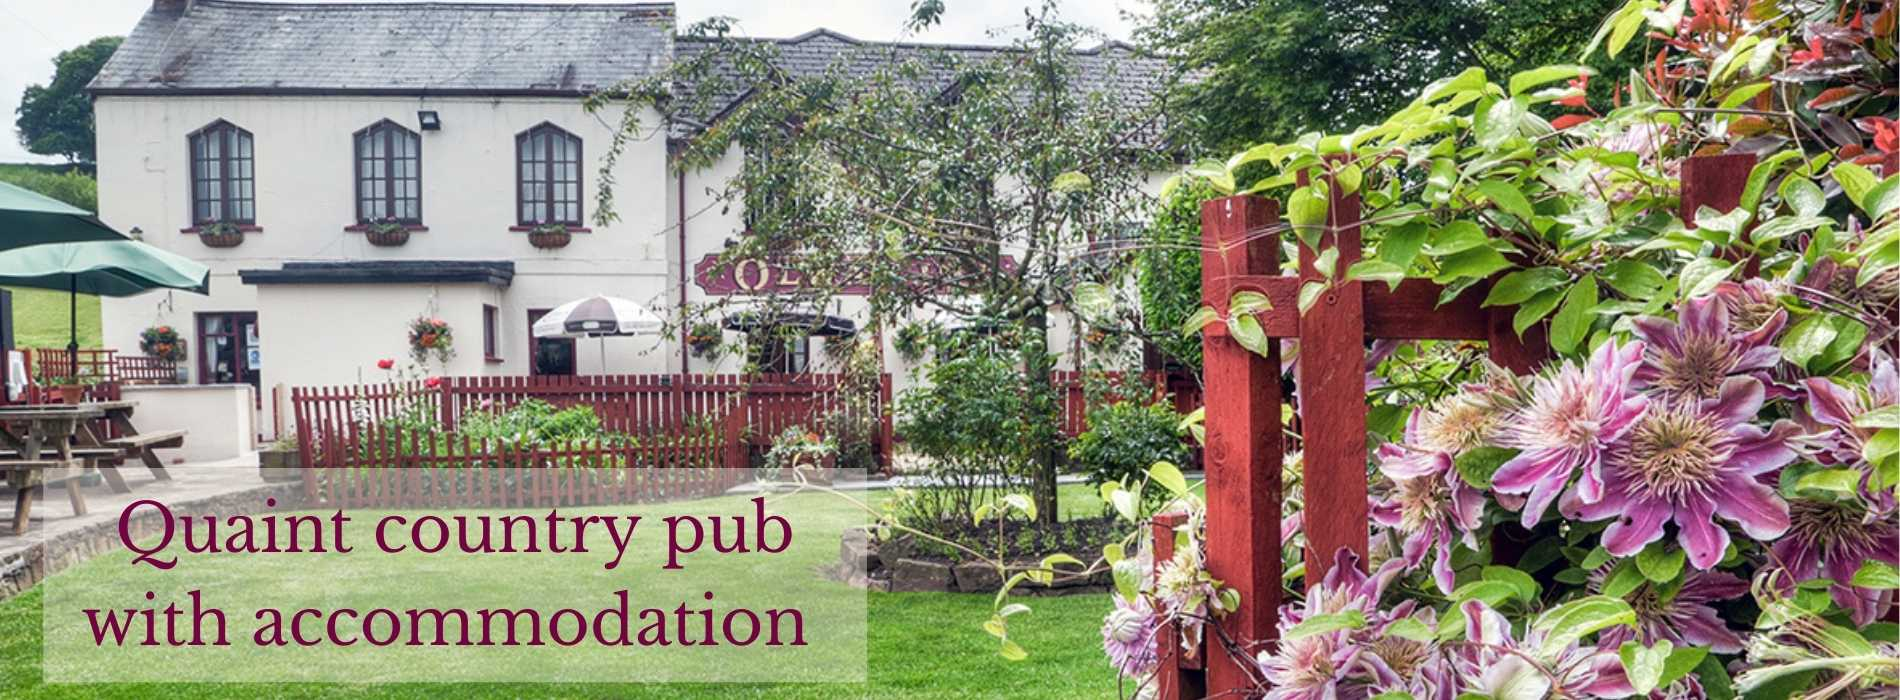 Olway Inn Pub with Accommodation